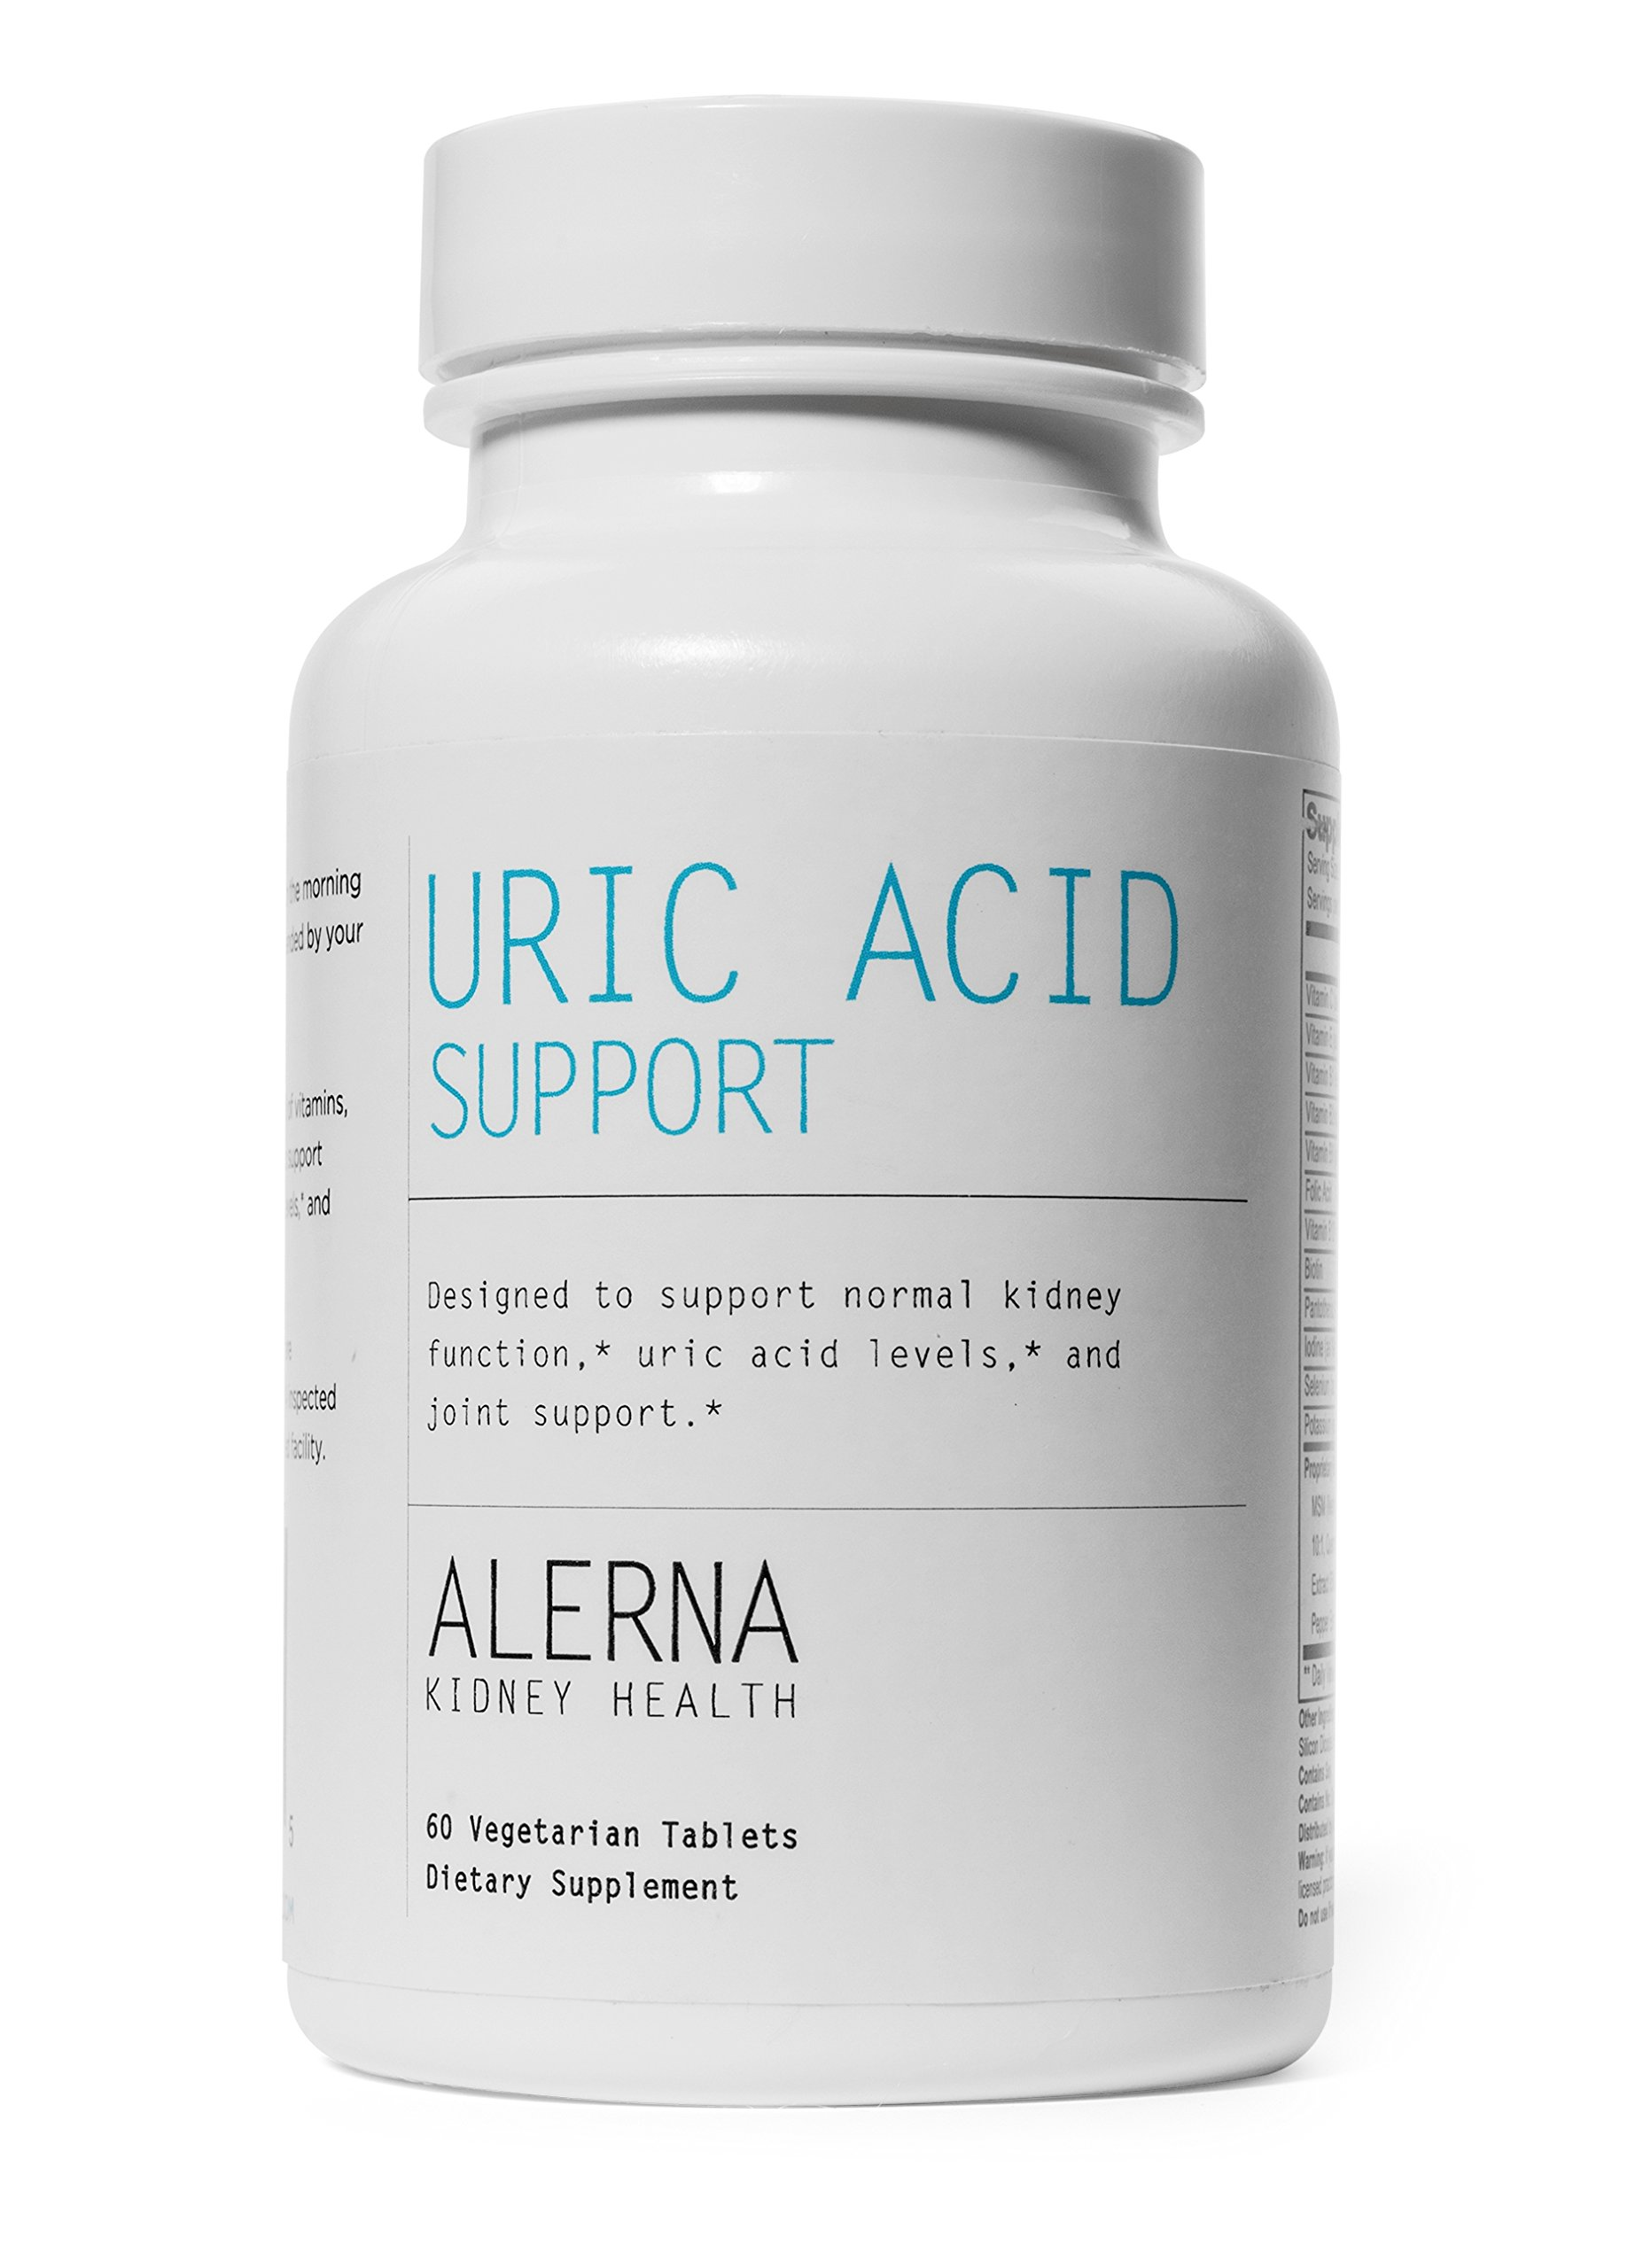 Uric Acid Support - Supports Normal Kidney Function & Uric Acid Levels (W/ Tart Cherry, Celery Extract, Turmeric, Quercetin, and more)